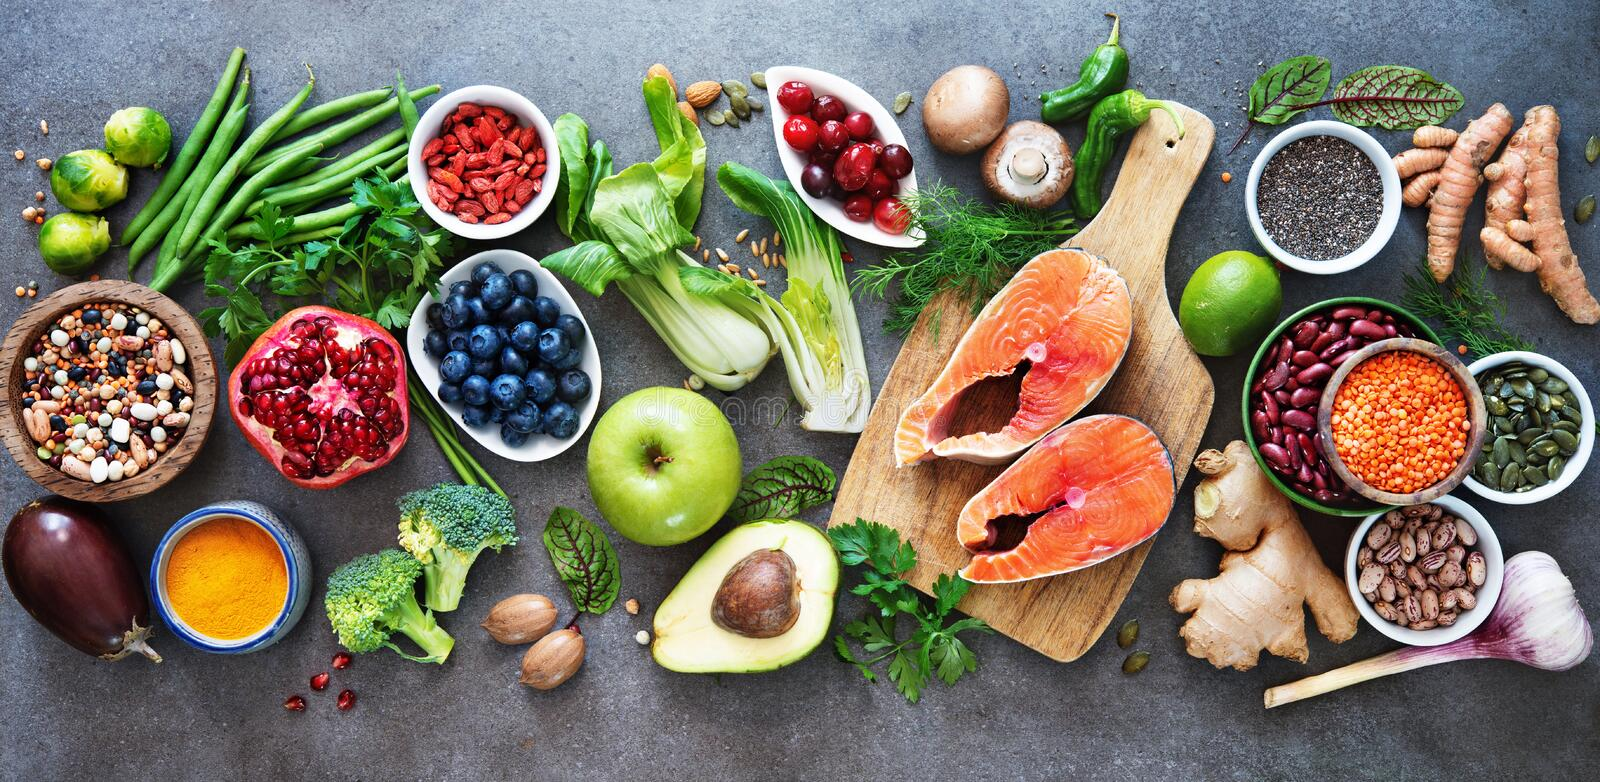 Healthy food selection. Food sources of omega 3 and unsaturated fats, fruits, vegetables, seeds, superfoods with high vitamin e and dietary fiber, cereals on stock image